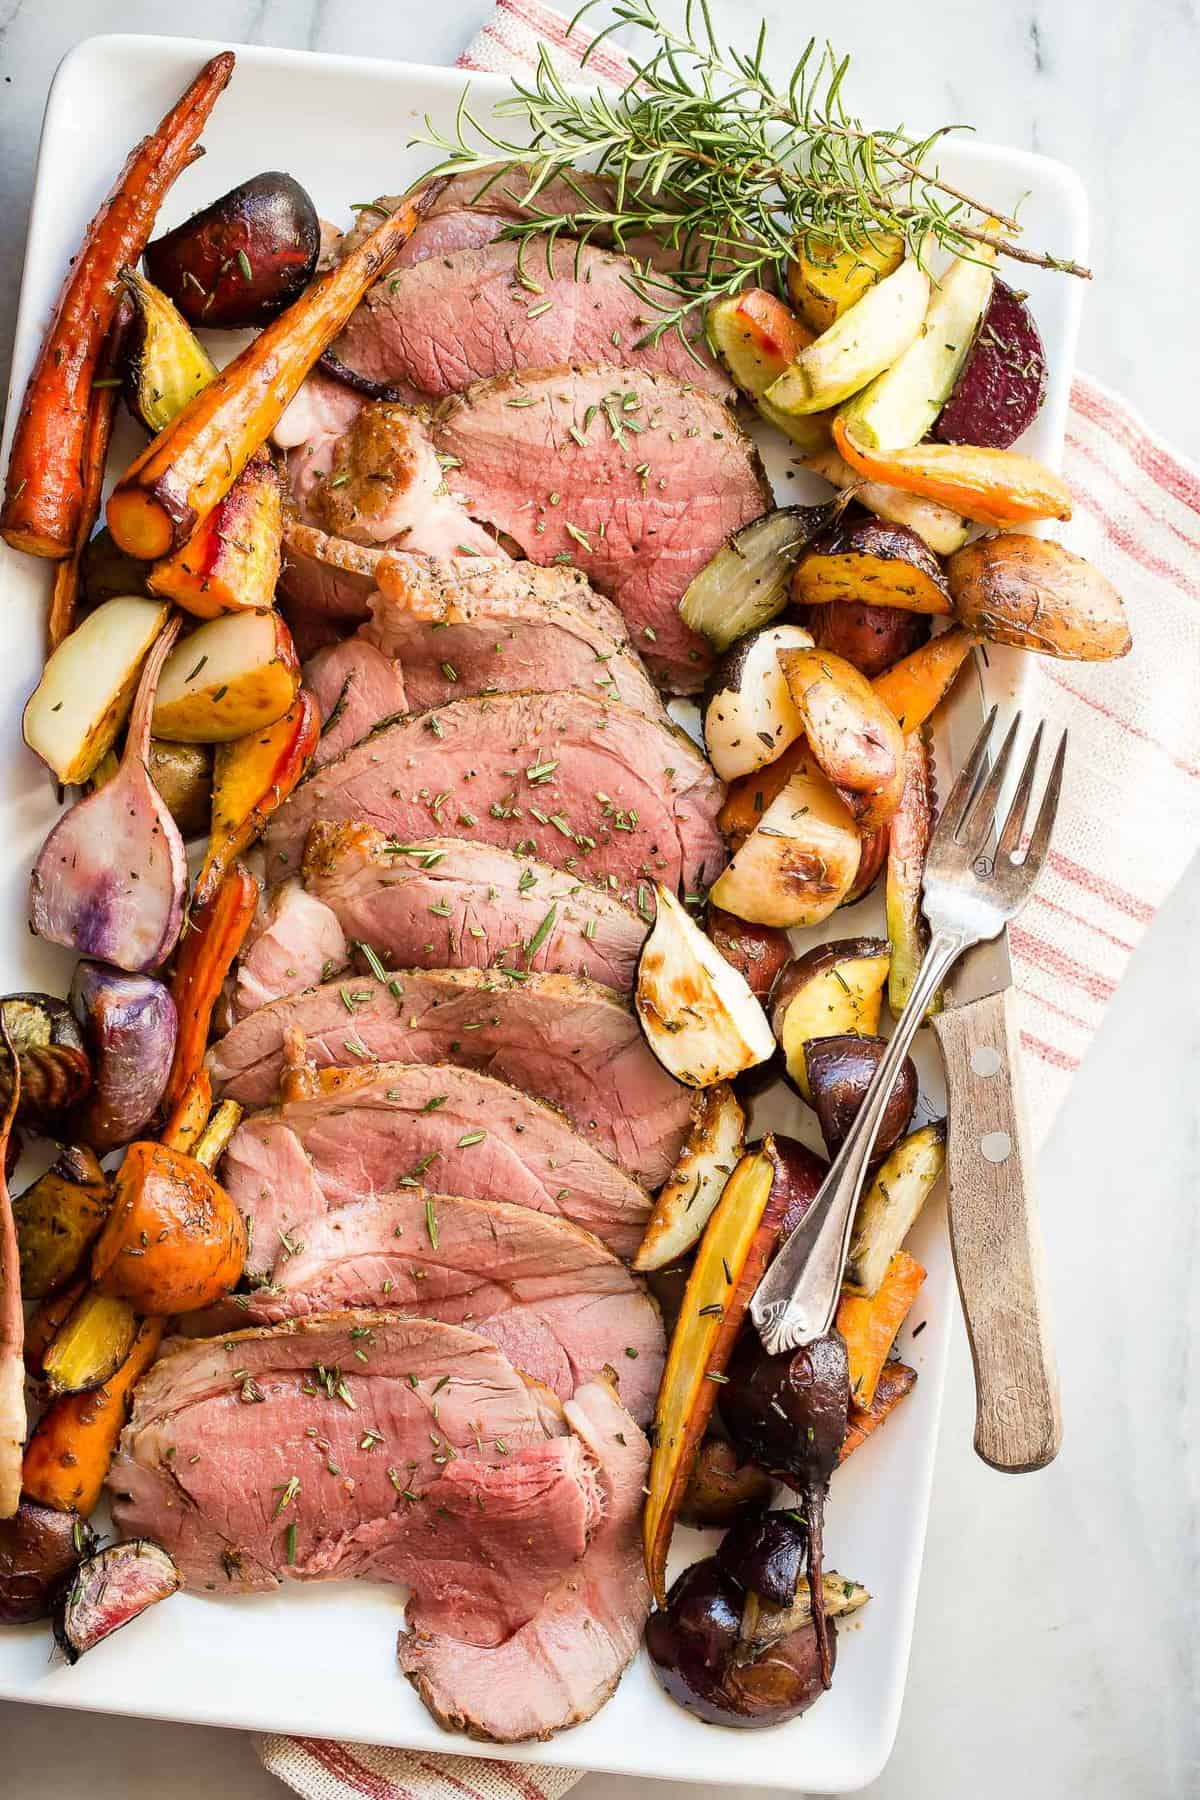 Roast leg of lamb with roasted root vegetables foodness gracious juicy roast leg of lamb served with roasted root vegetables forumfinder Choice Image